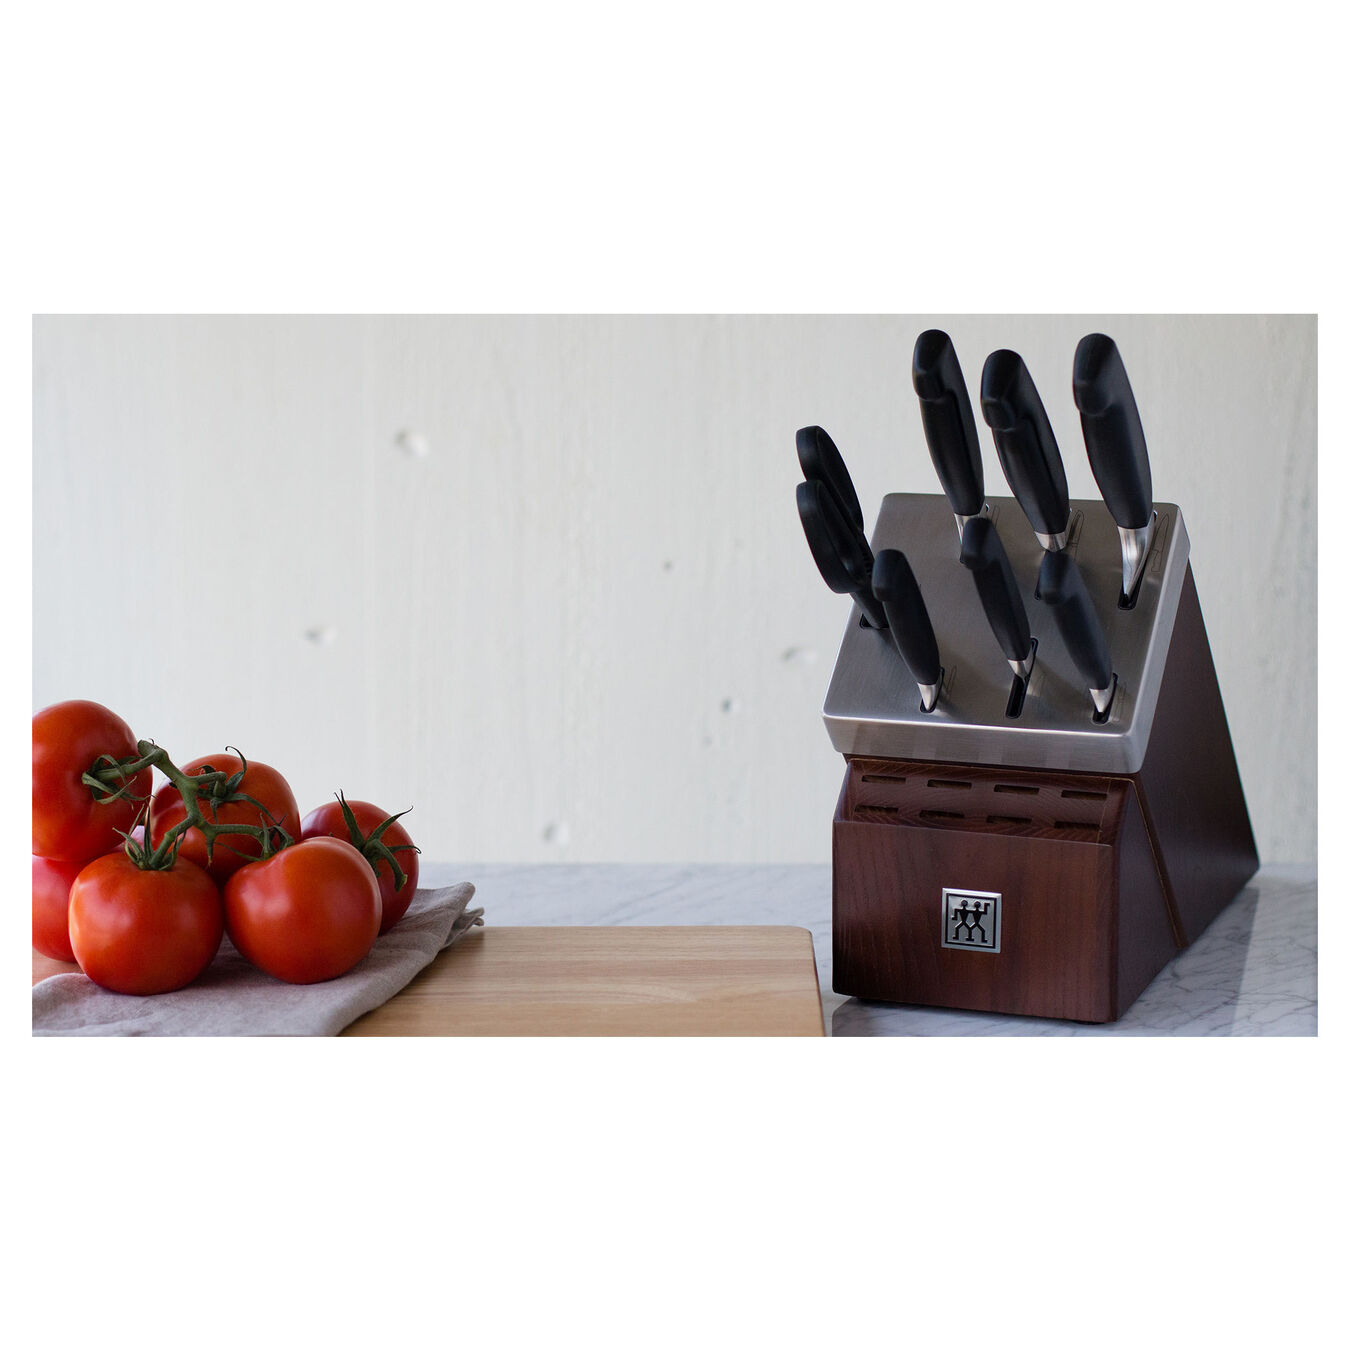 8-pc, Self-Sharpening Knife Block Set , natural,,large 4